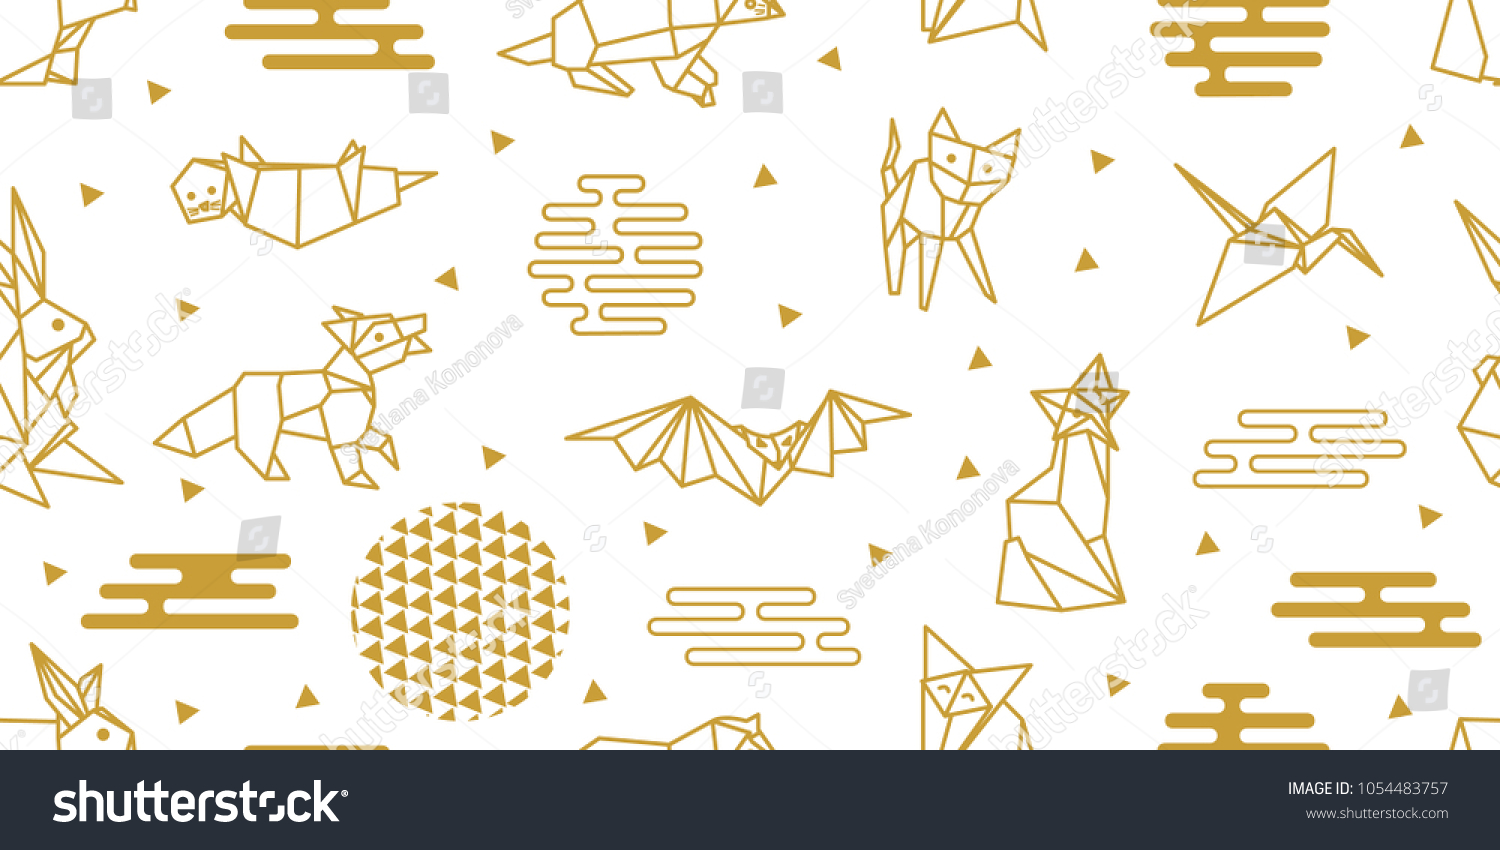 Origami Animals Seamless Vector Pattern Hares Stock Royalty Dinosaurs Diagrams Embroidery With Foxes Cats Dogs Birds